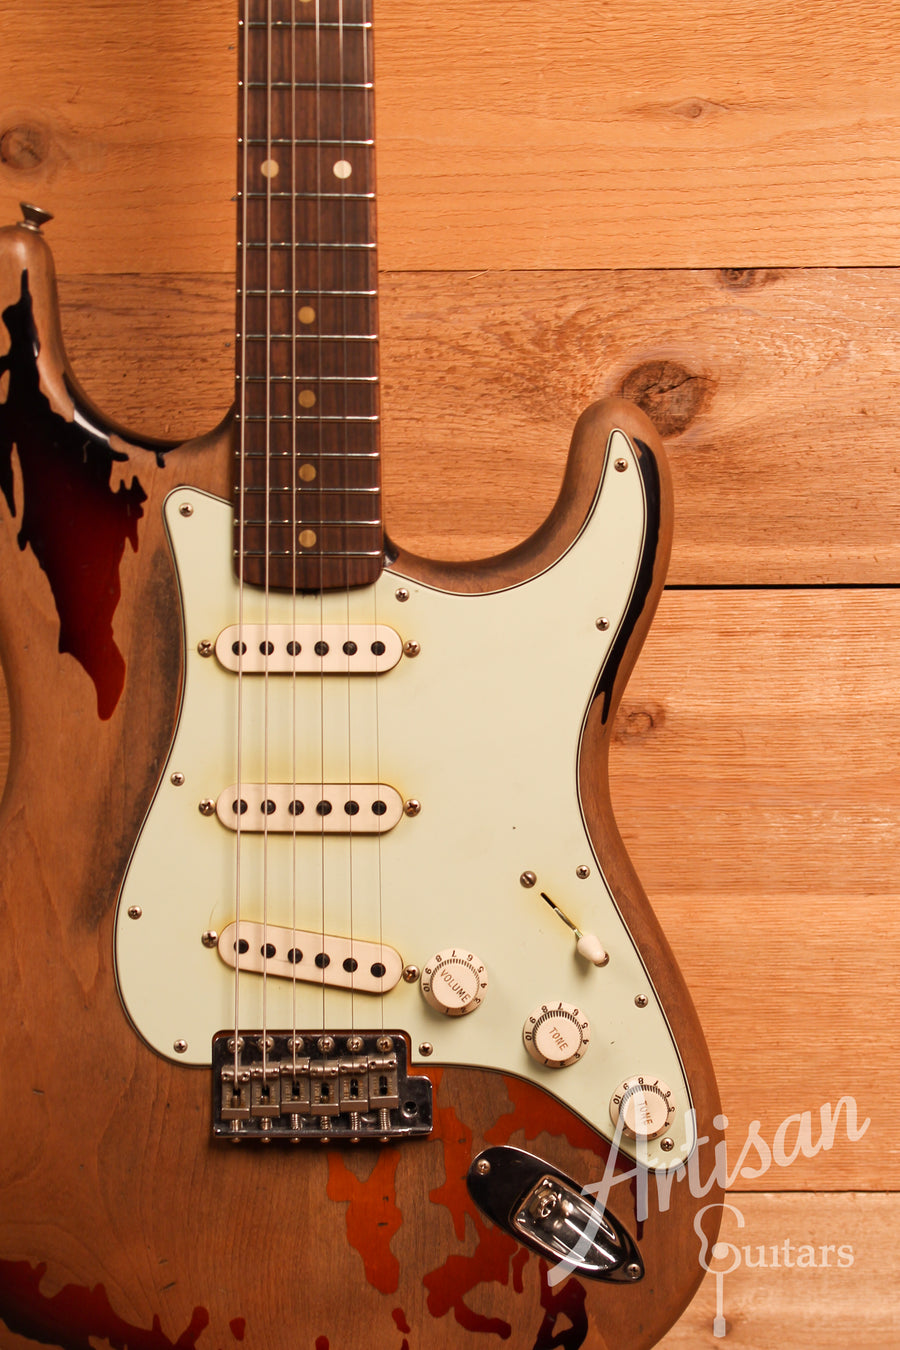 Fender Custom Shop Artist Collection Rory Gallagher Signature Stratocaster Heavy Relic 3 Color Sunburst Finish ID-11337